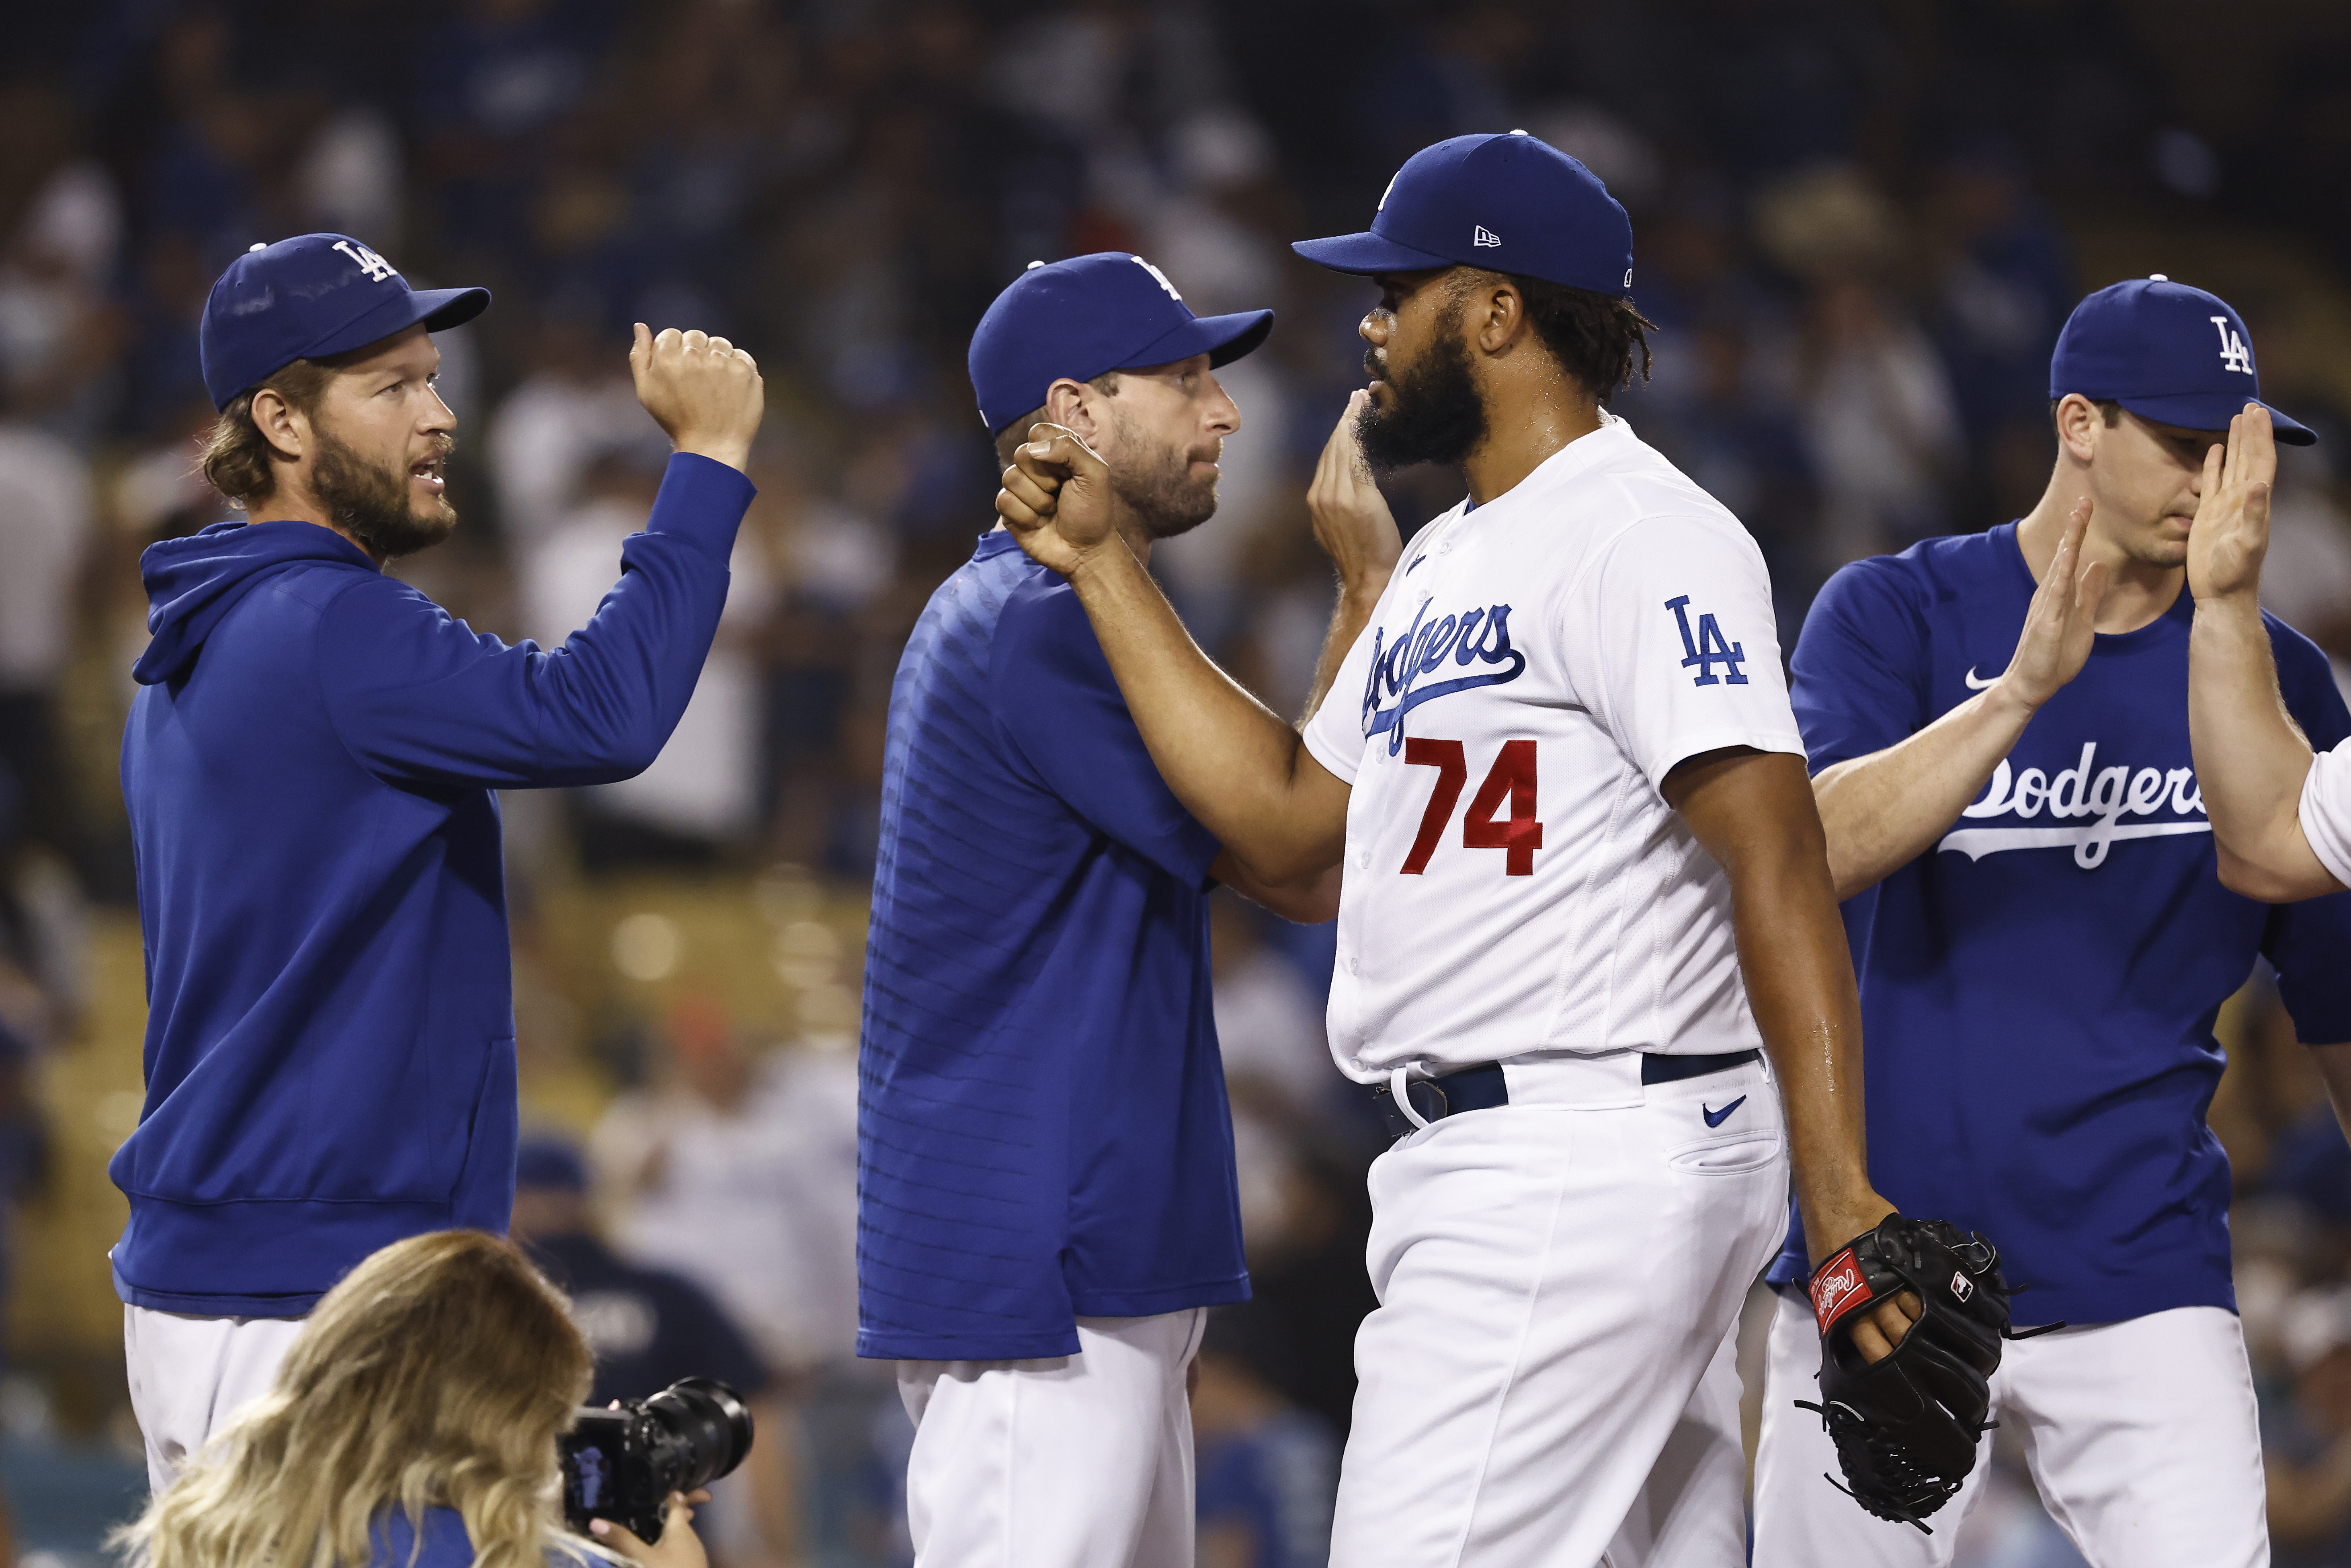 Kenley Jansen of the Los Angeles Dodgers celebrates with Clayton Kershaw, Max Scherzer and Walker Buehler after defeating the Pittsburgh Pirates 4-3 during the ninth inning at Dodger Stadium on August 17, 2021 in Los Angeles, California.